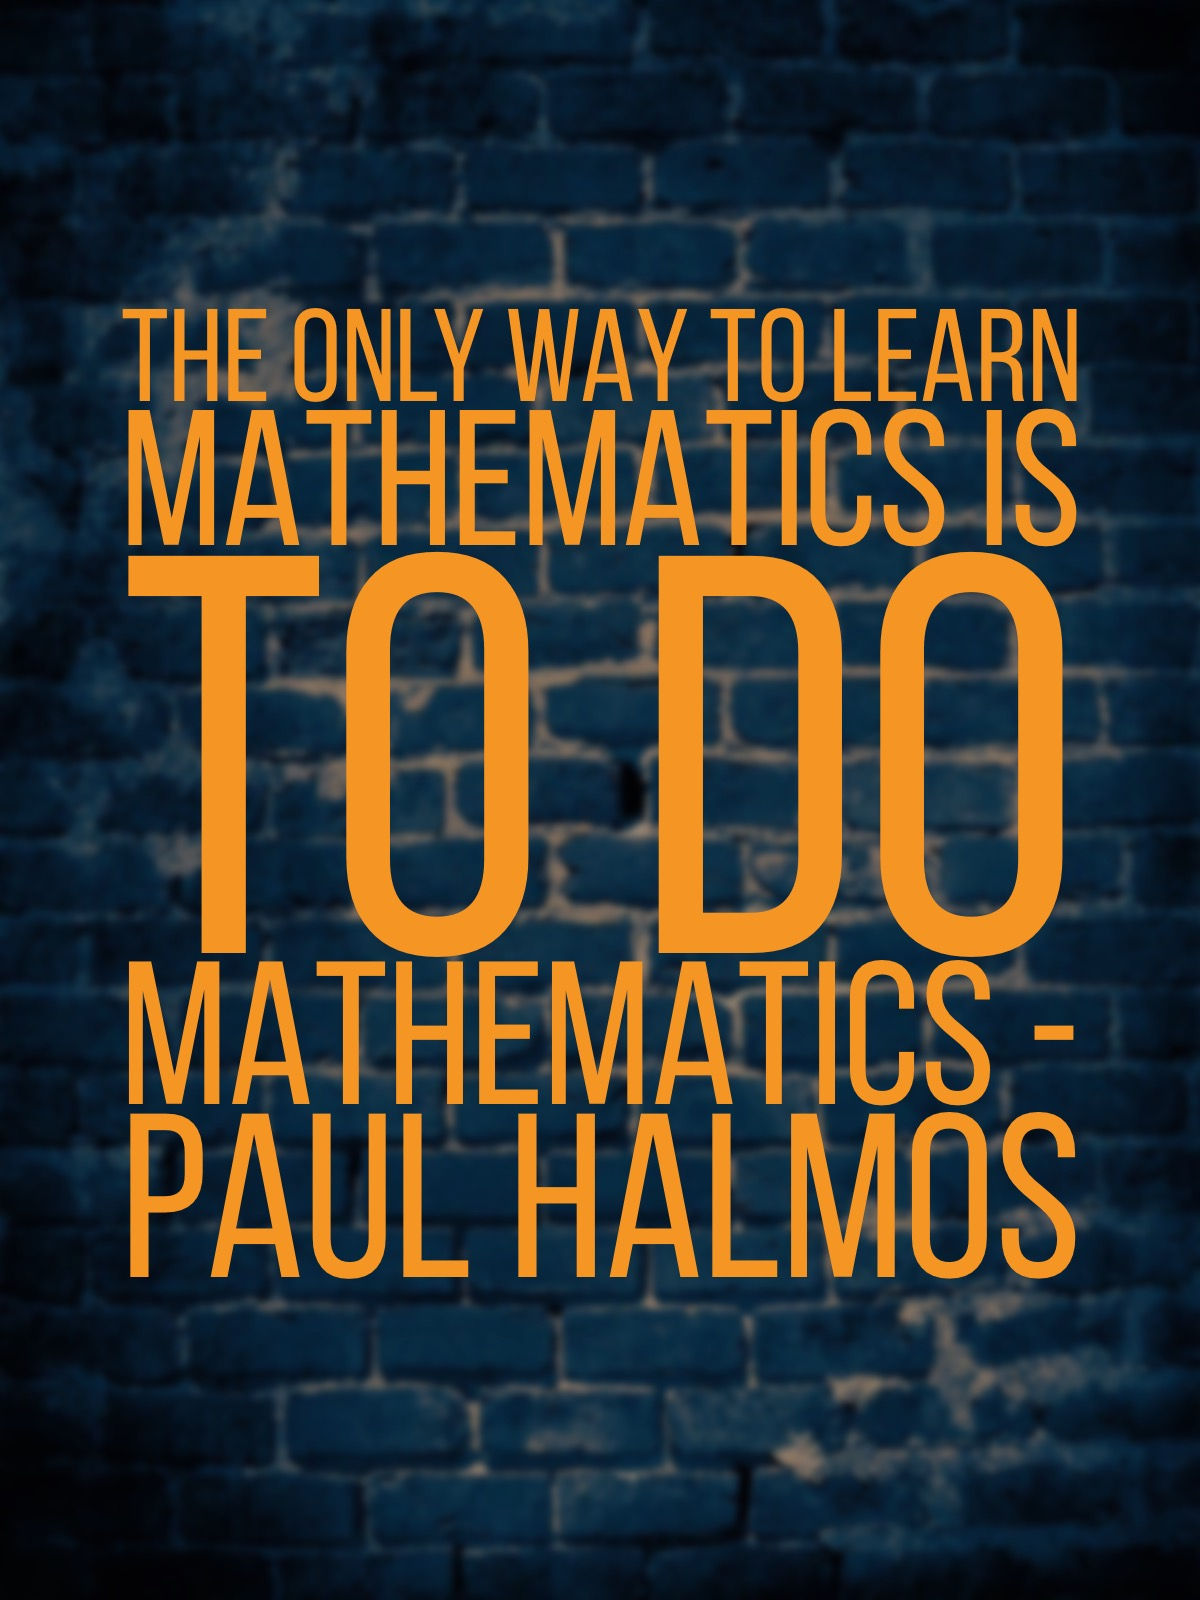 Maths_quotes_1